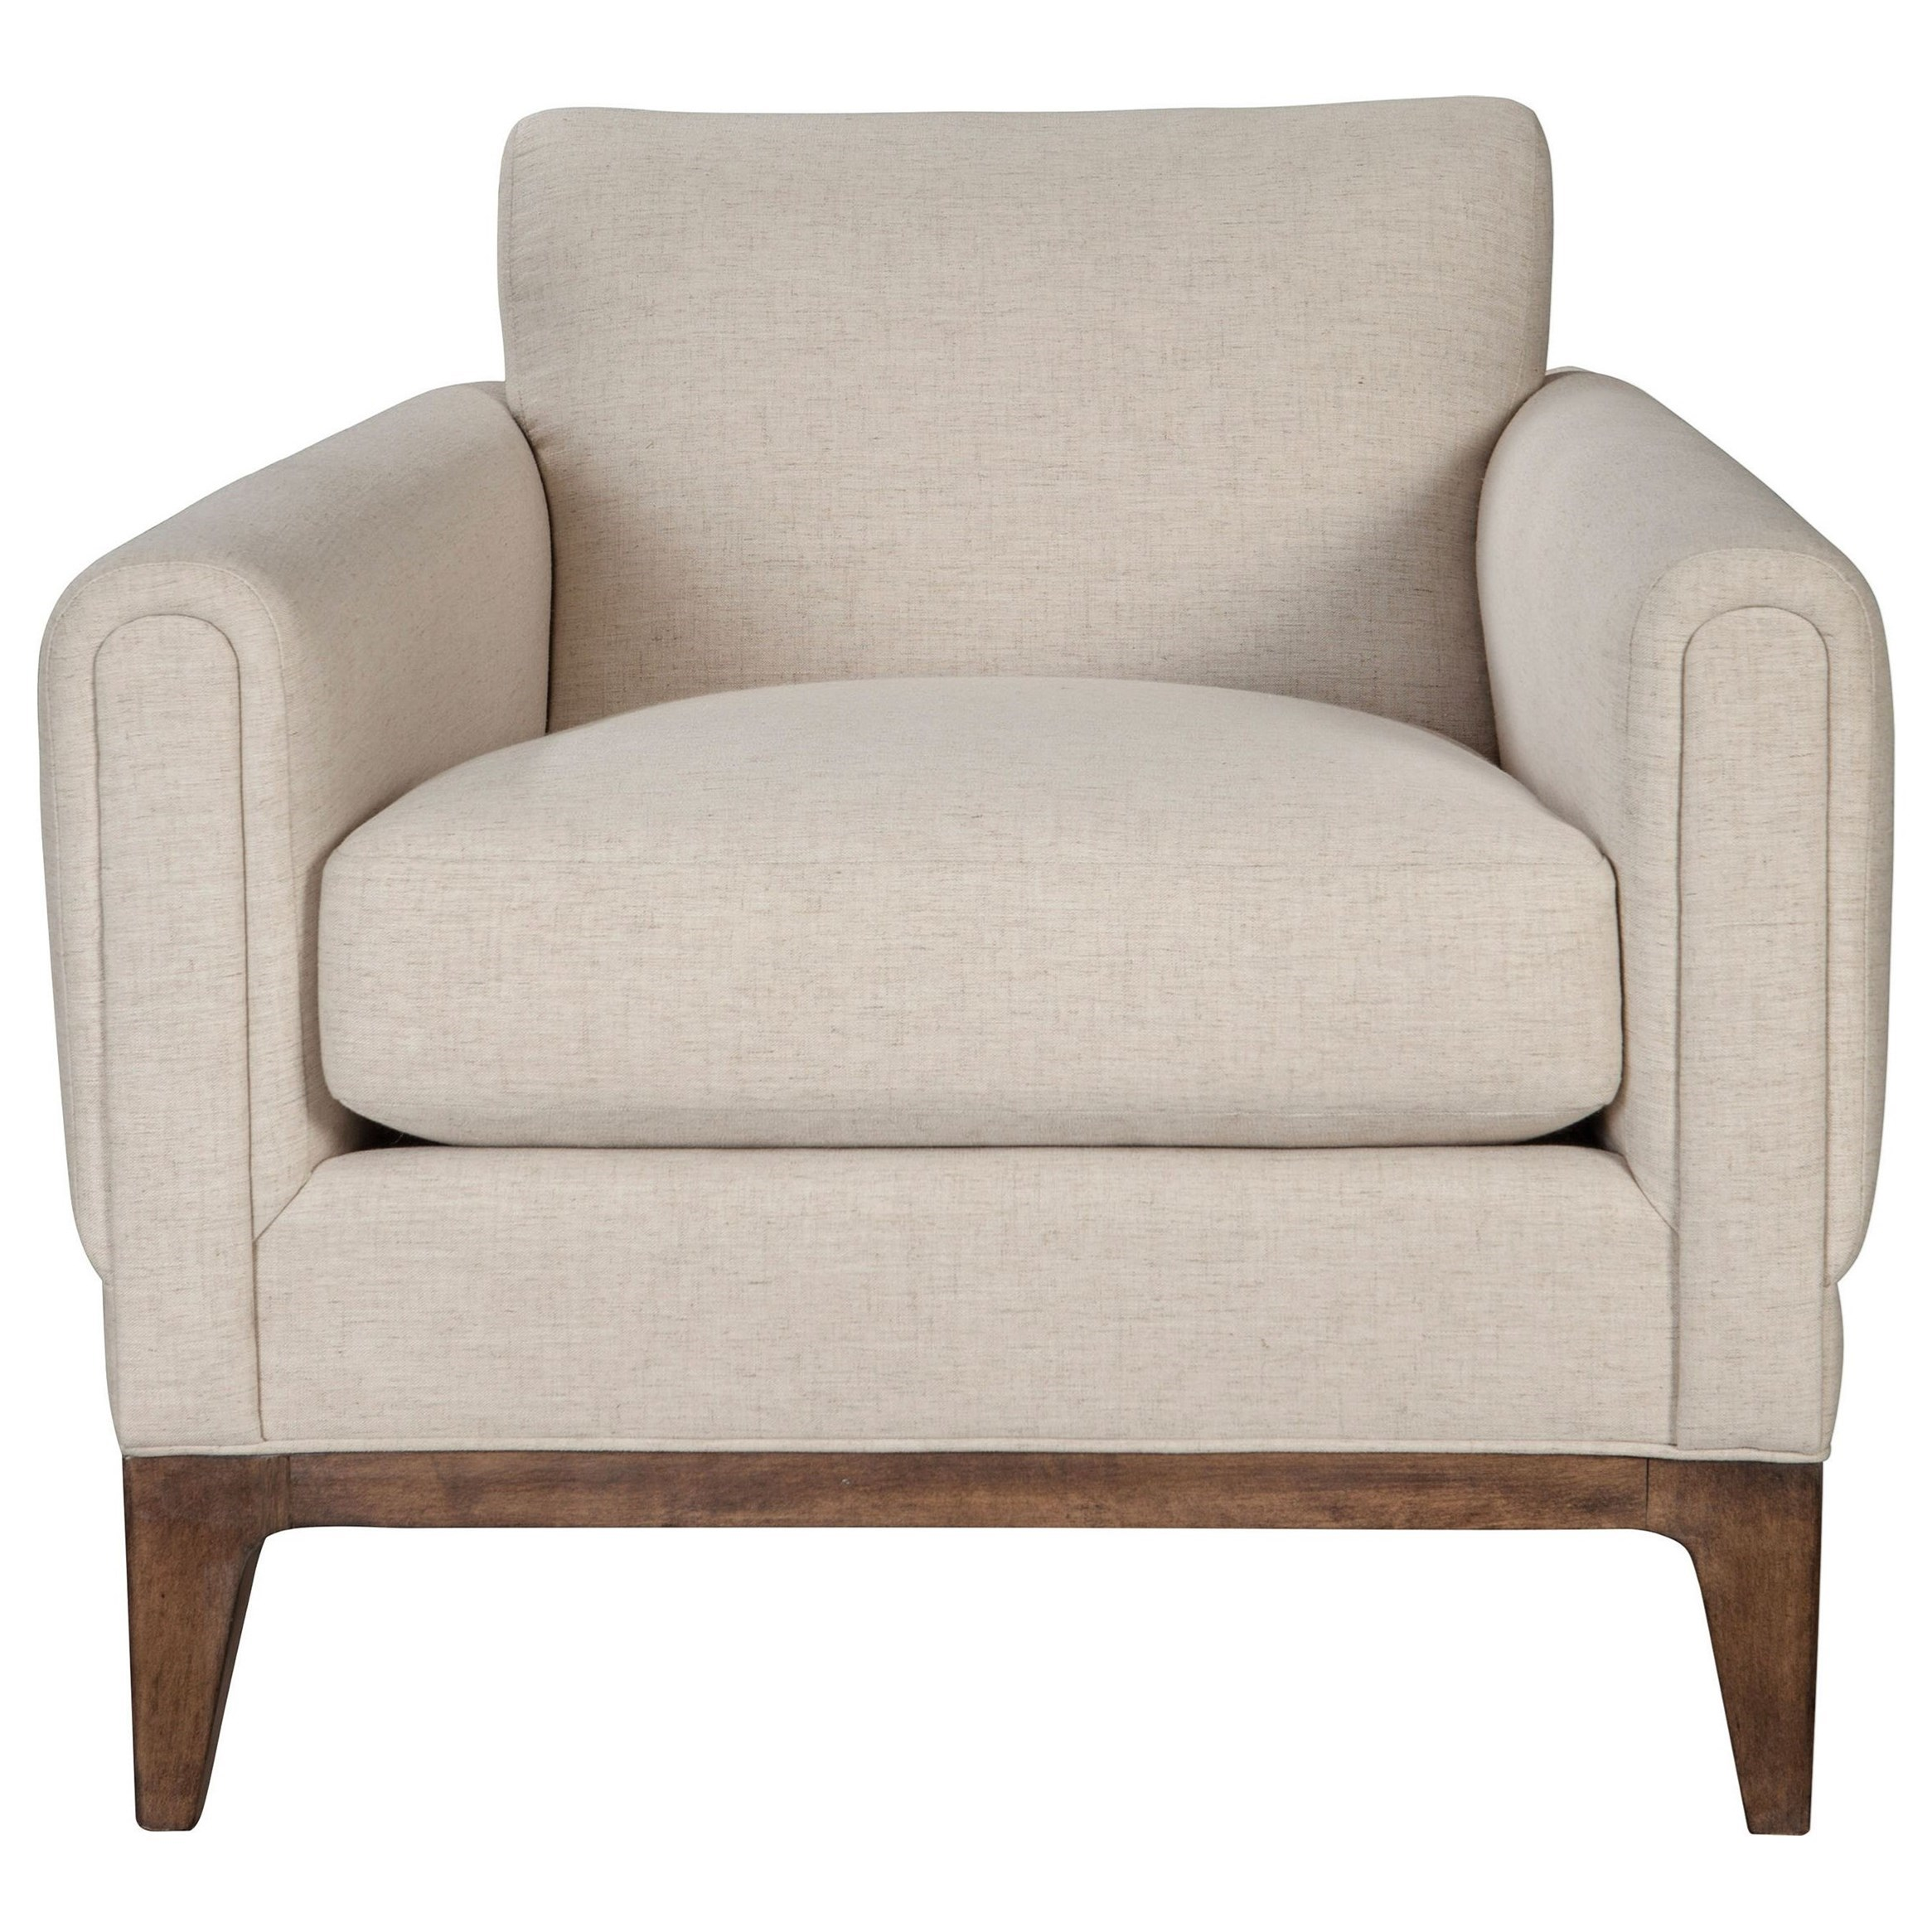 Romero Chair by ED Ellen DeGeneres Crafted by Thomasville at C. S. Wo & Sons Hawaii